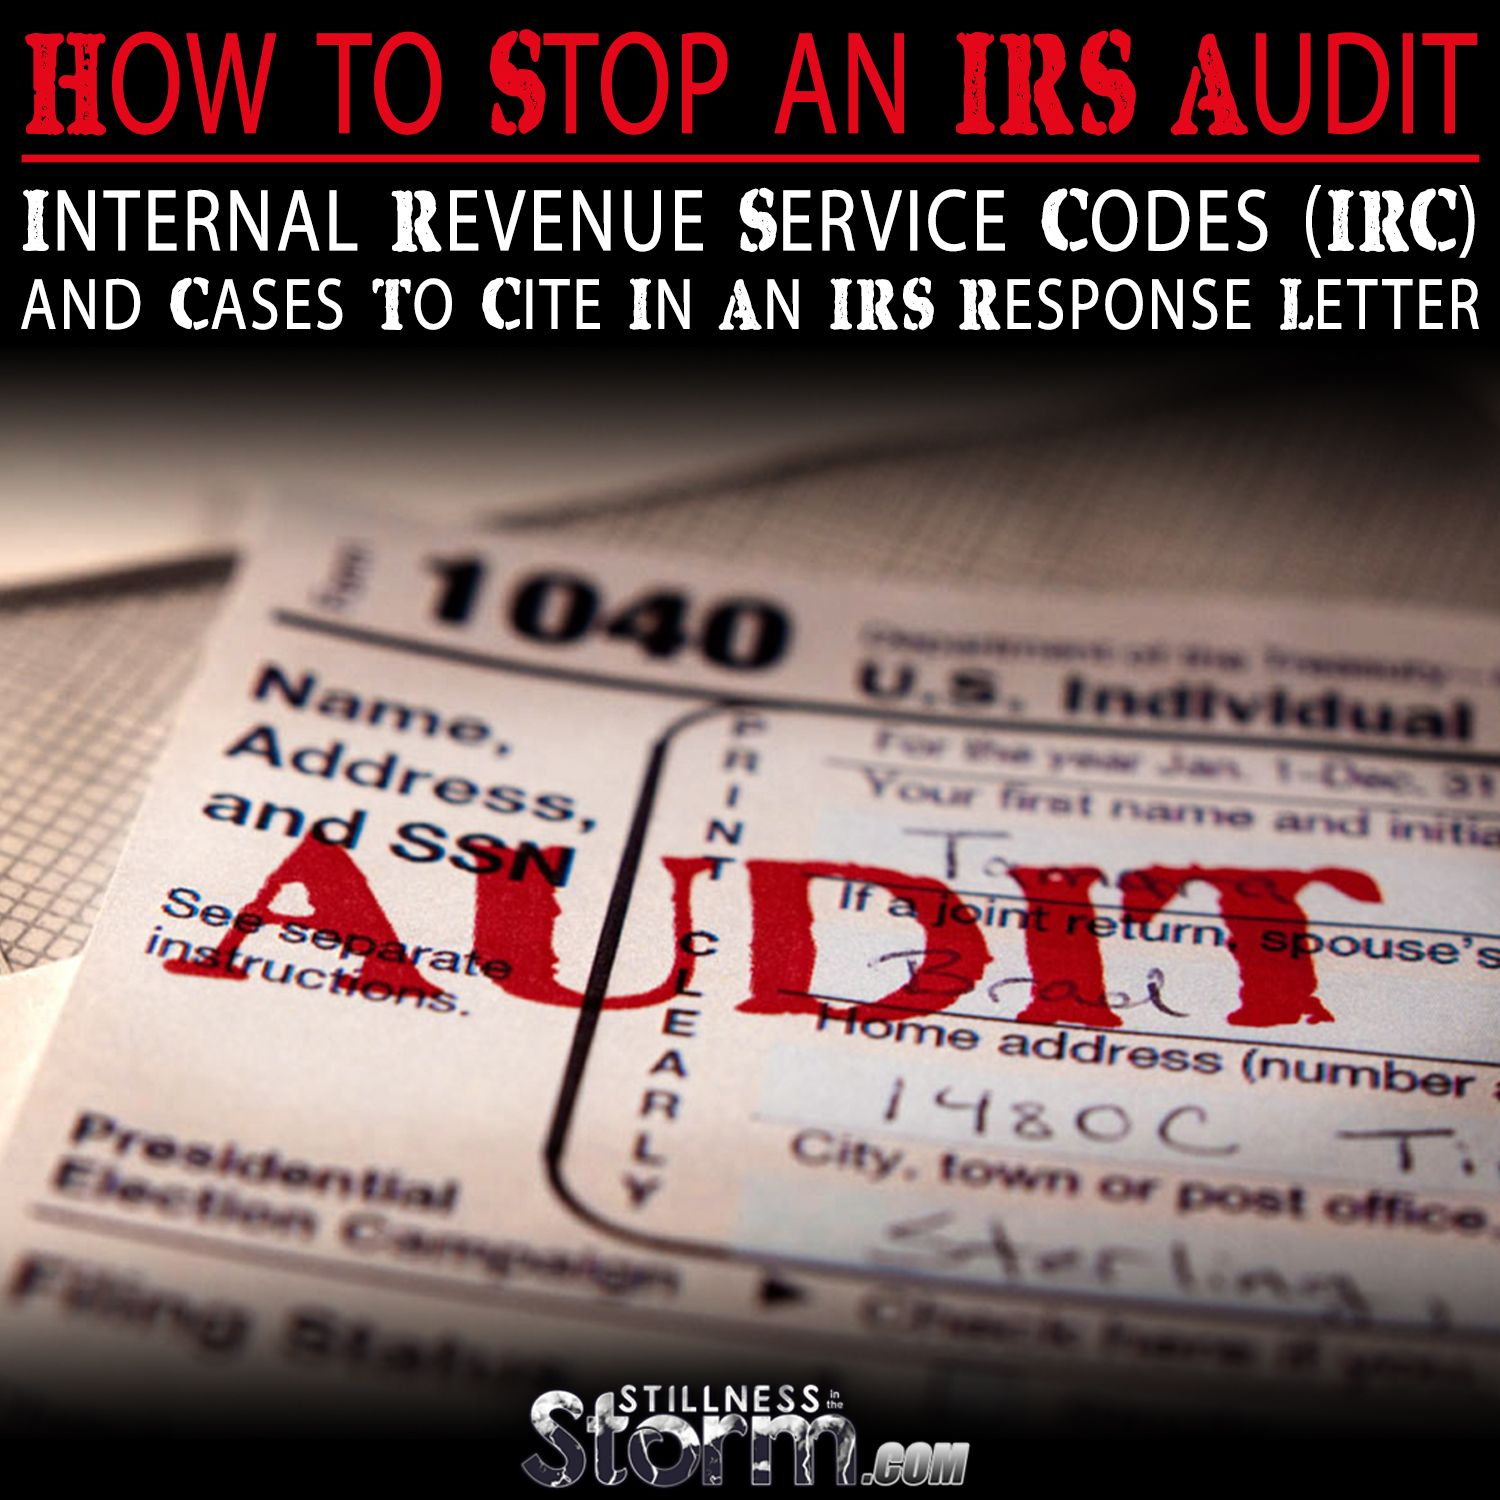 How to Stop an IRS Audit (With images) Internal revenue